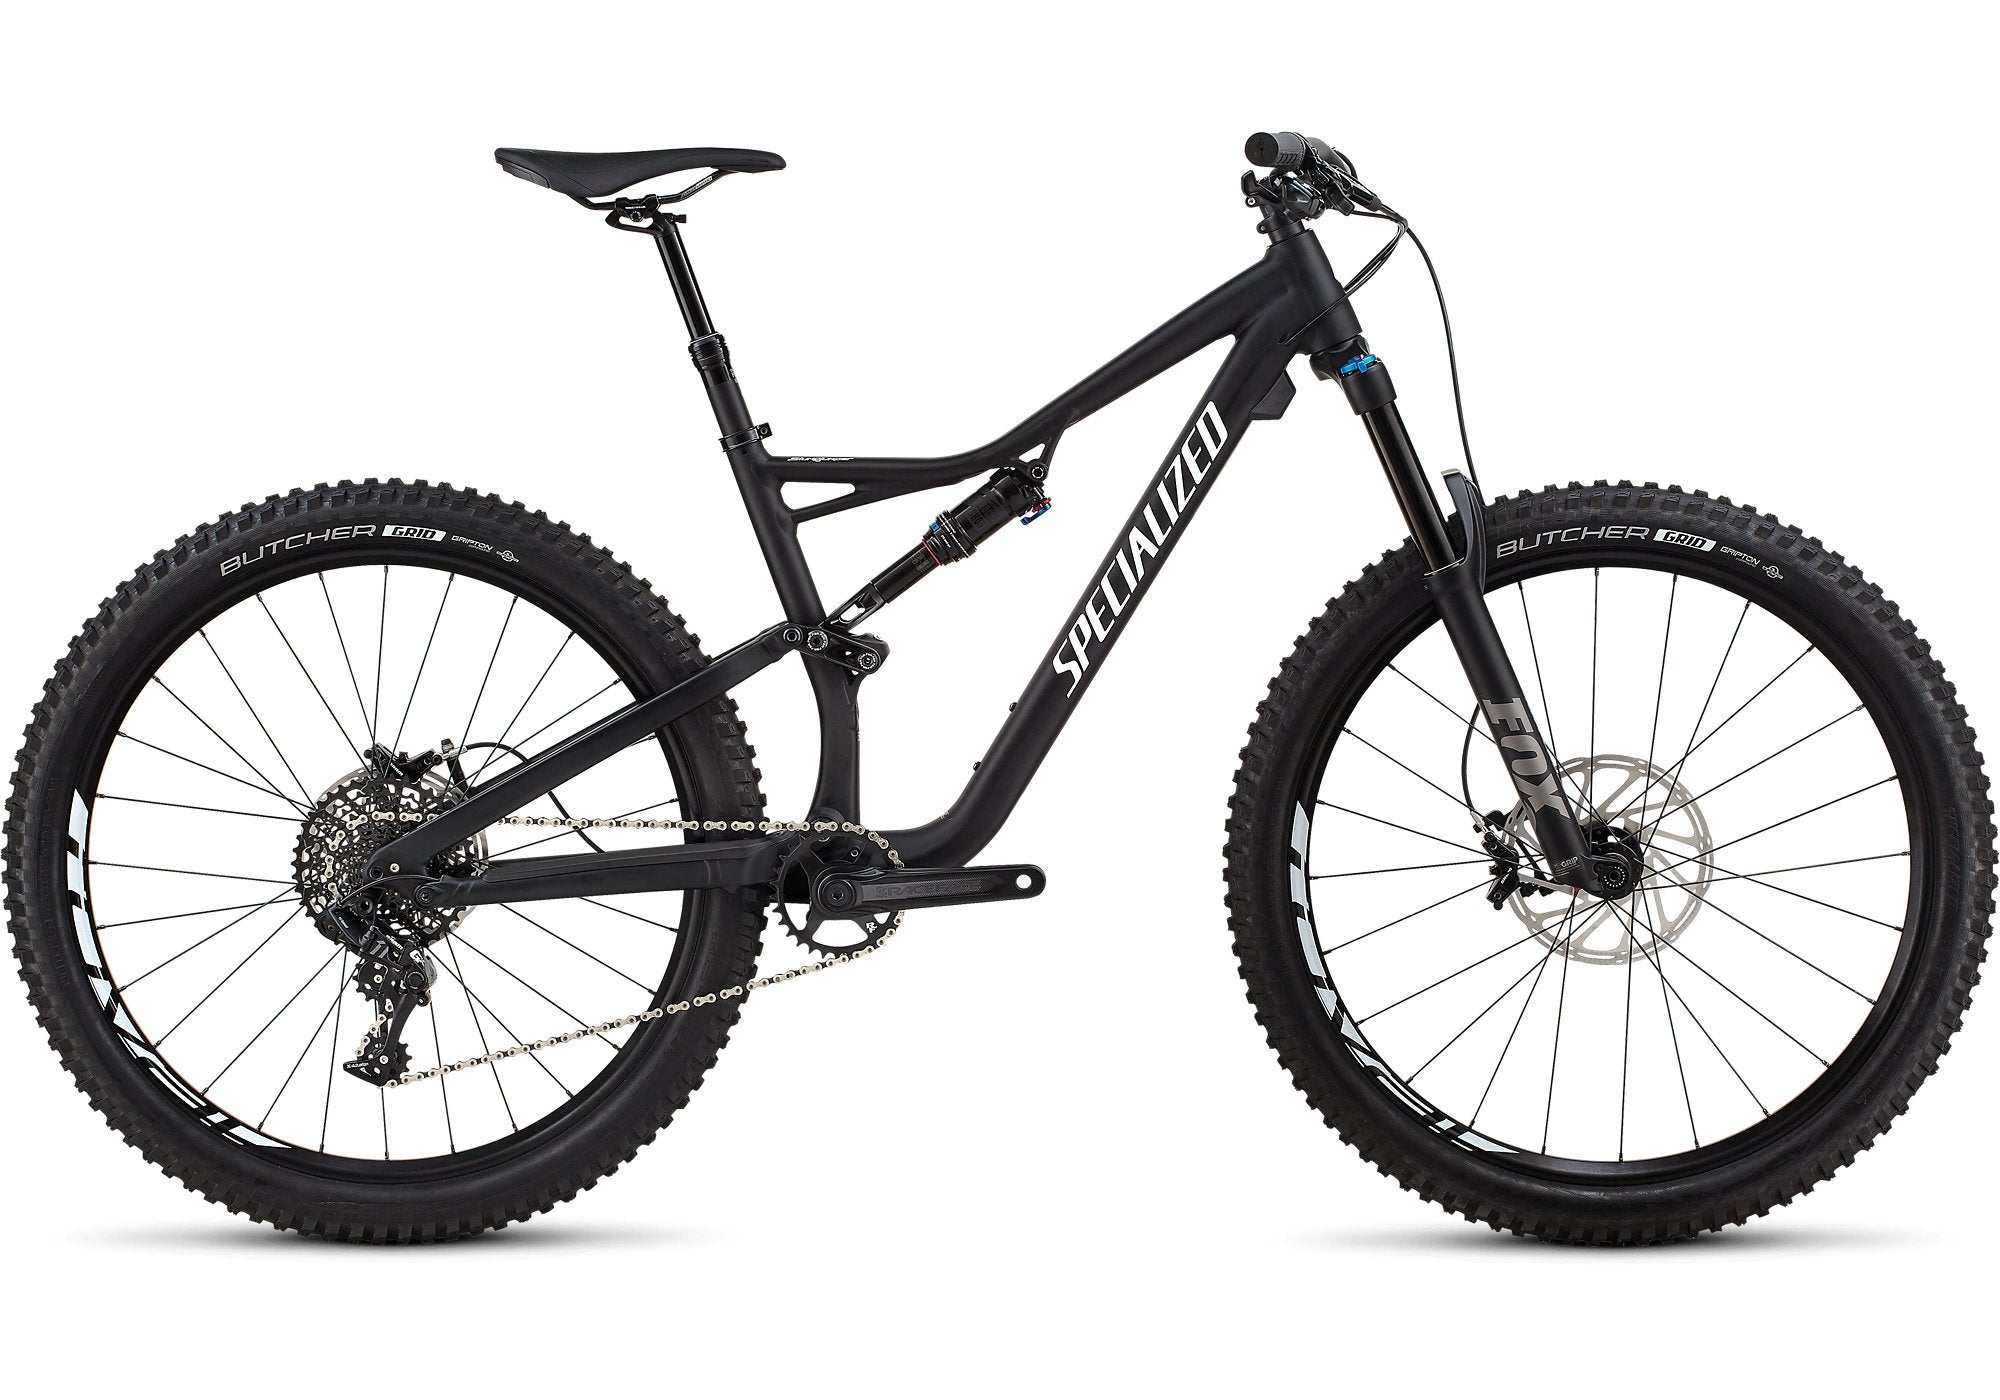 Specialized Stumpjumper FSR 27.5 12 Spd Comp Bike